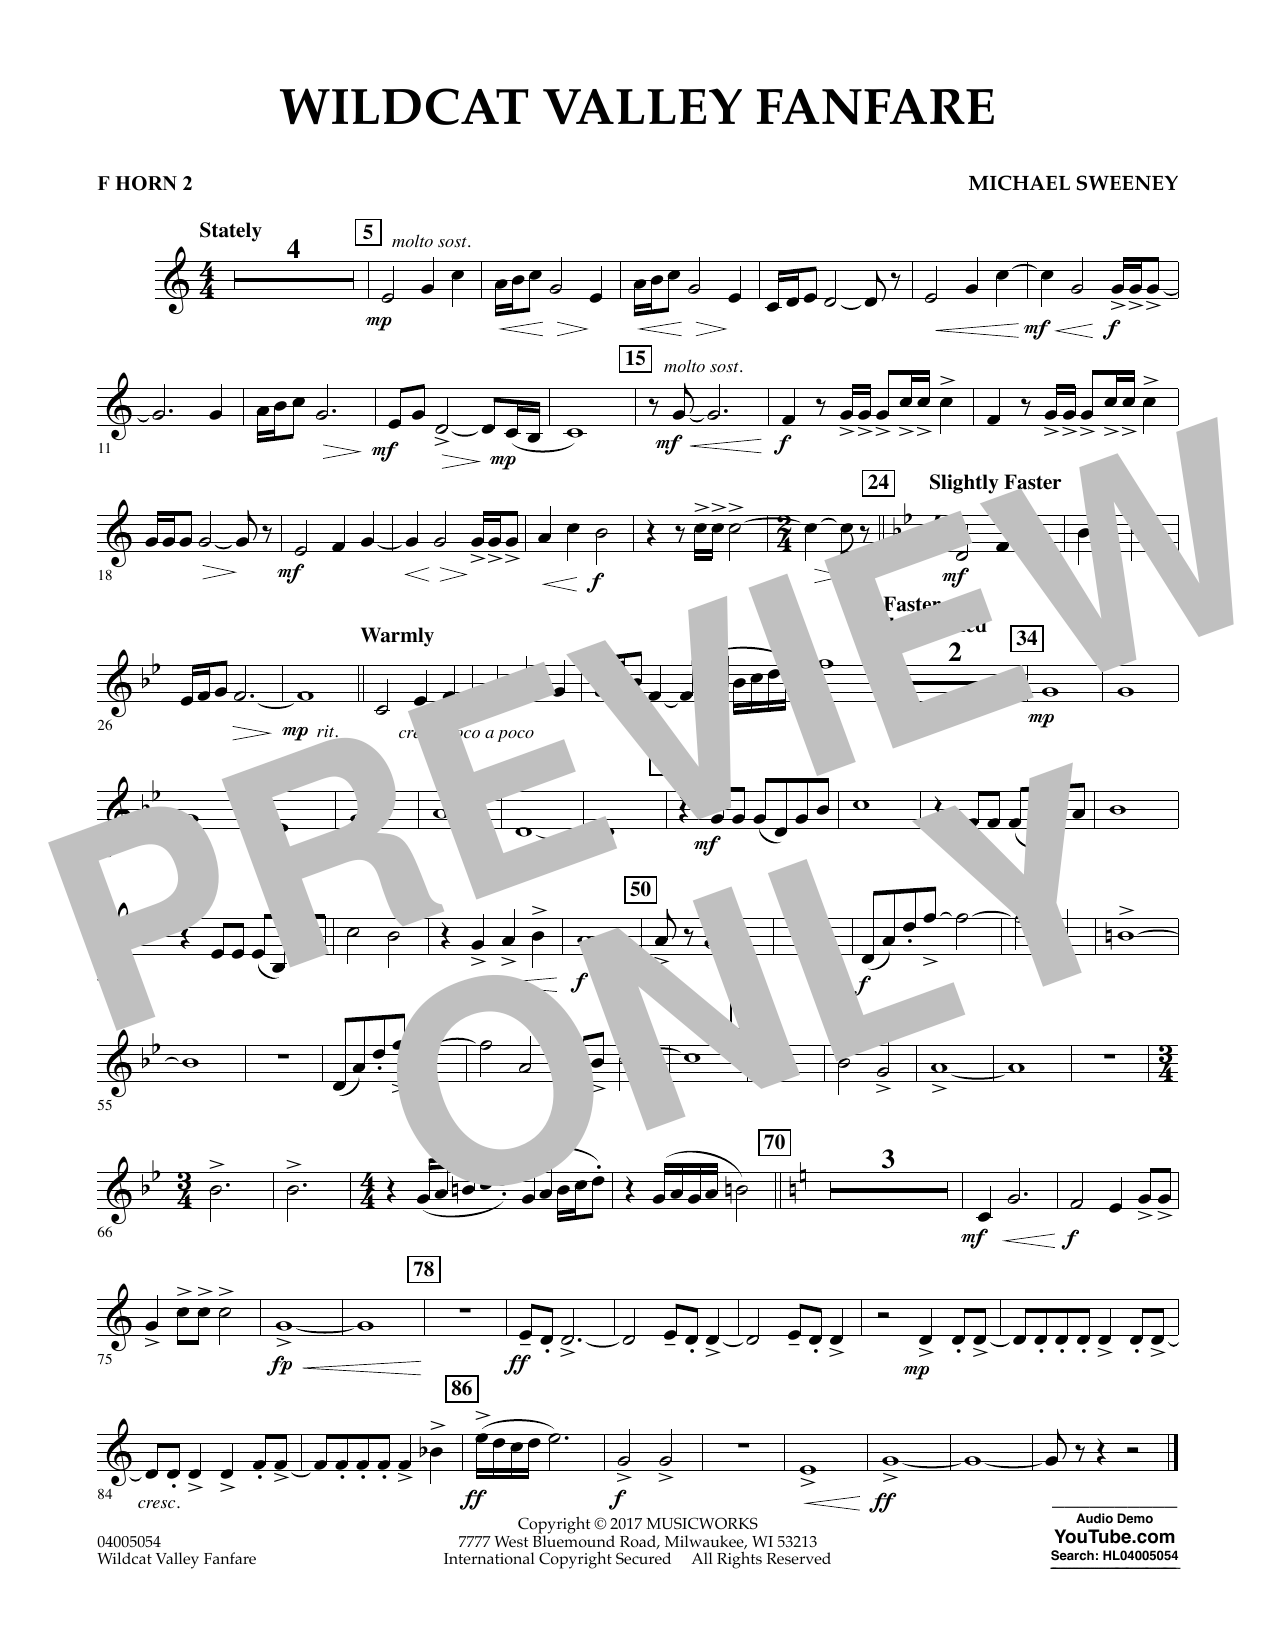 Wildcat Valley Fanfare - F Horn 2 Partituras Digitales